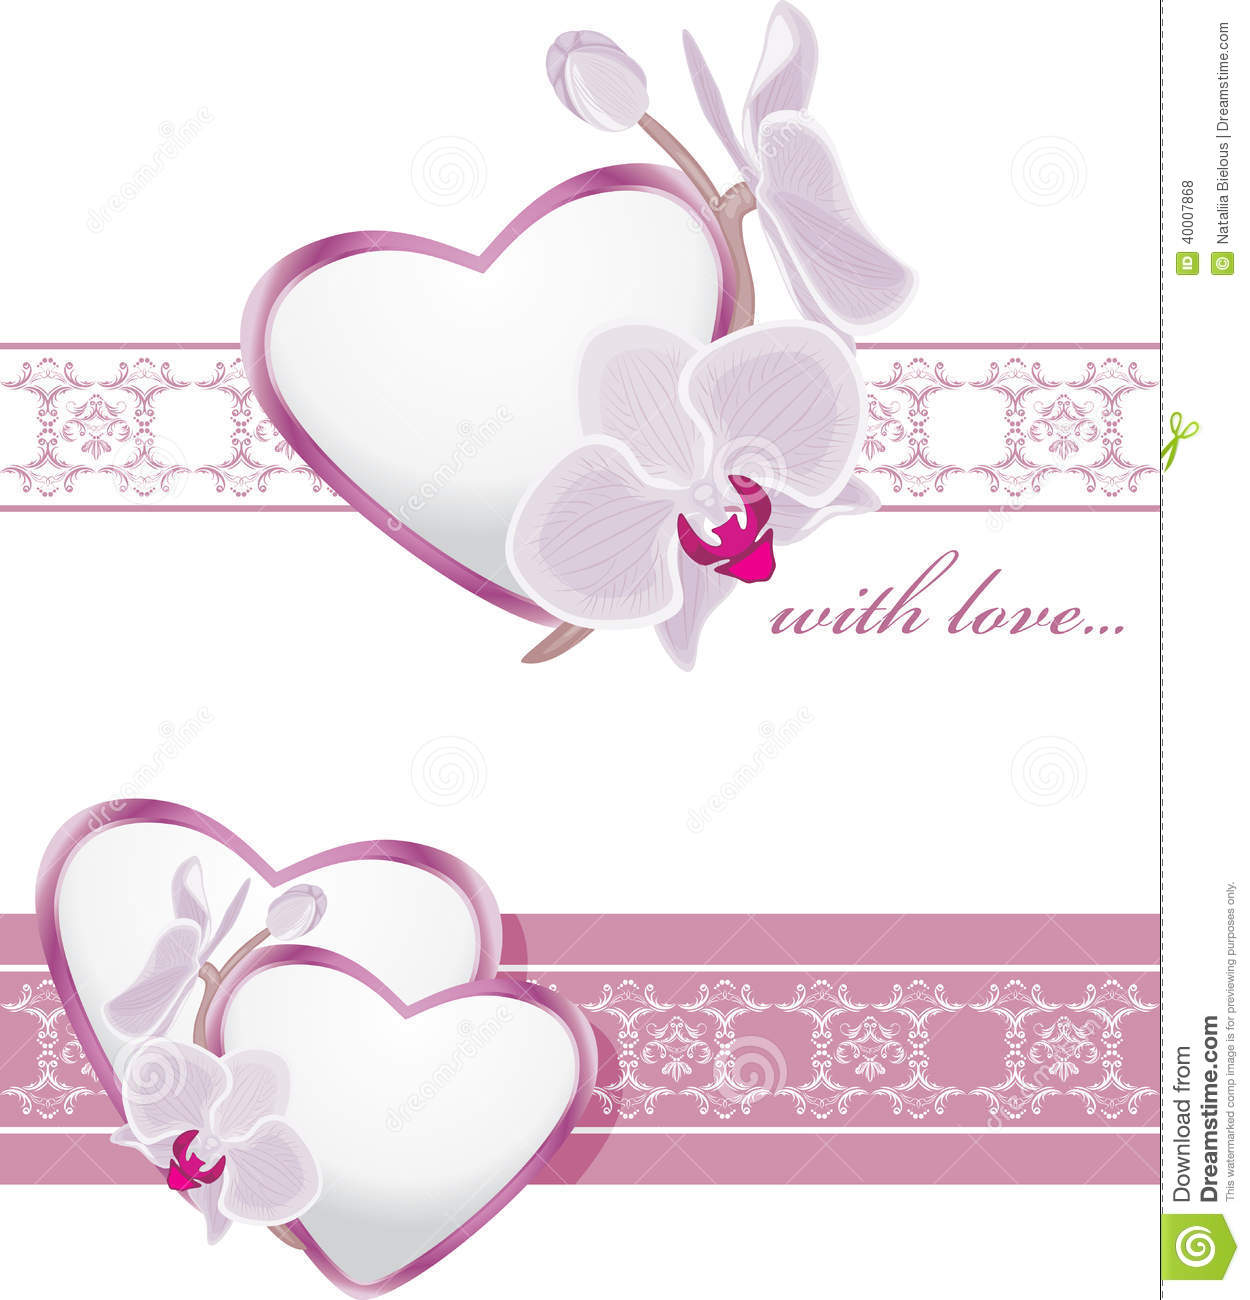 Decorative Borders With Hearts And Blooming Orchids Stock Vector ...